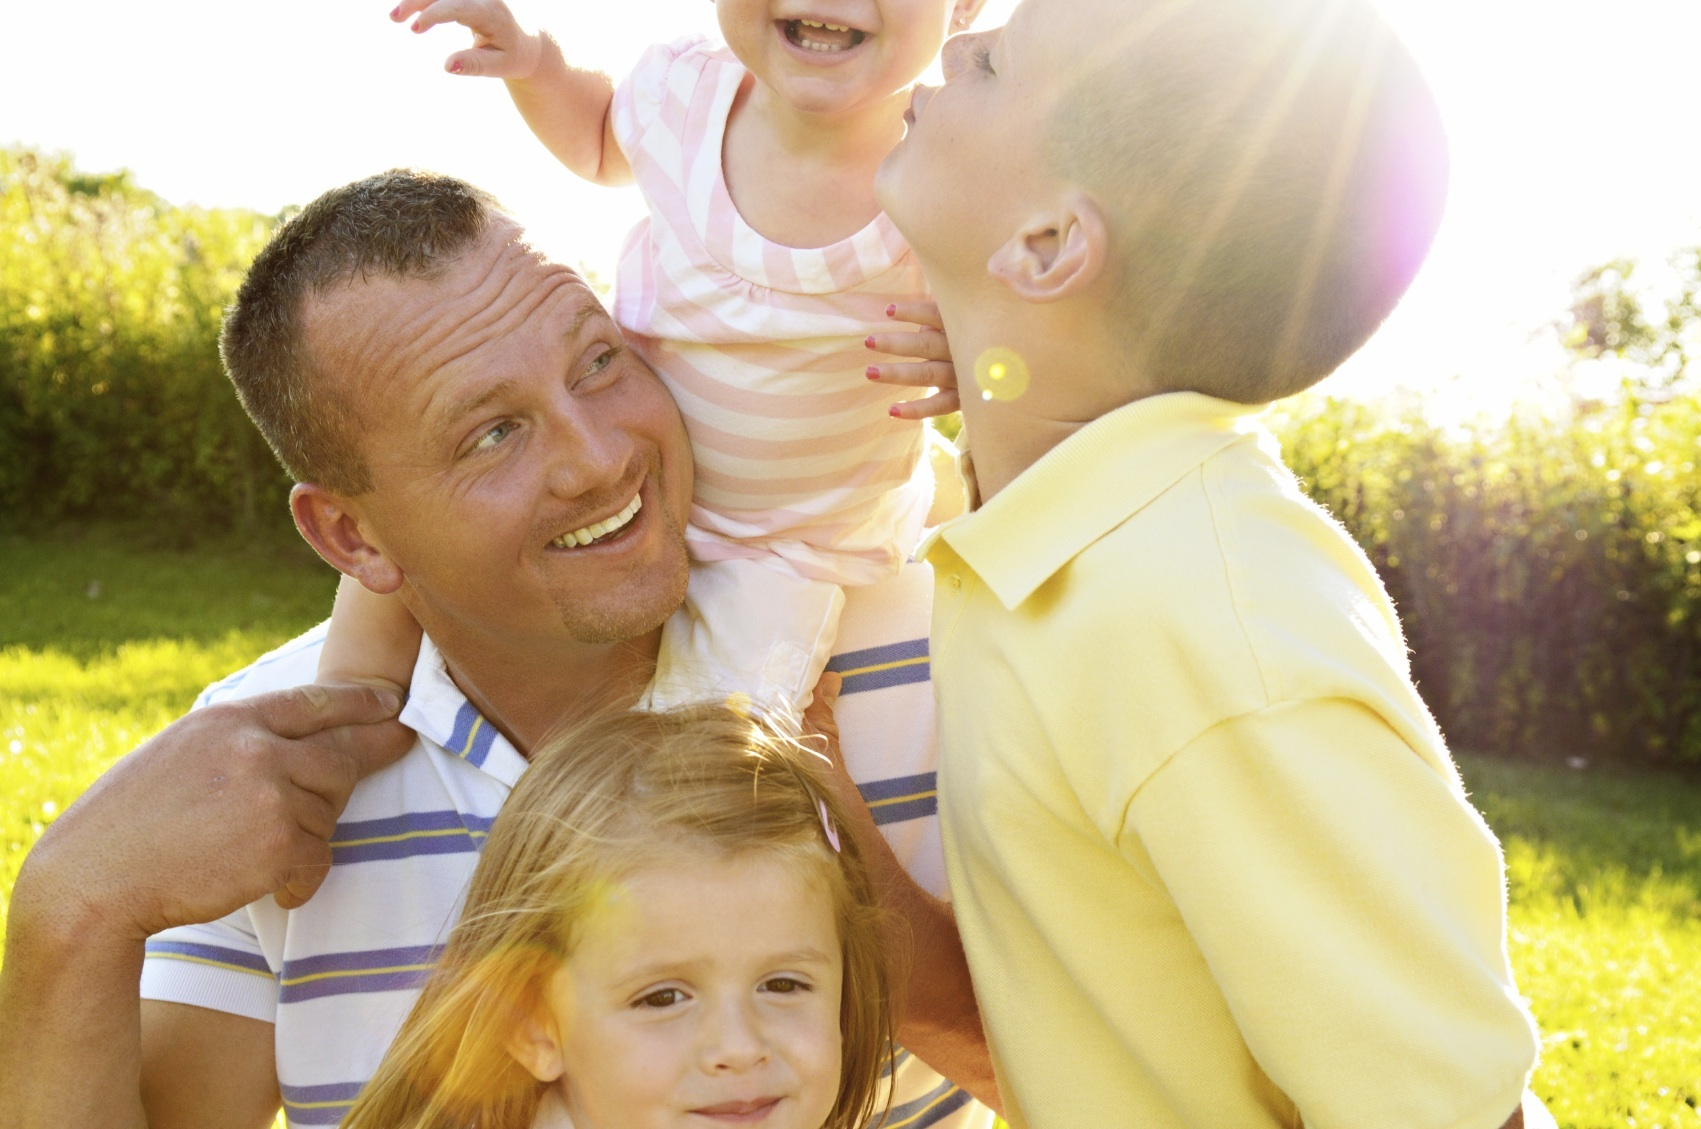 Gay single parent dating